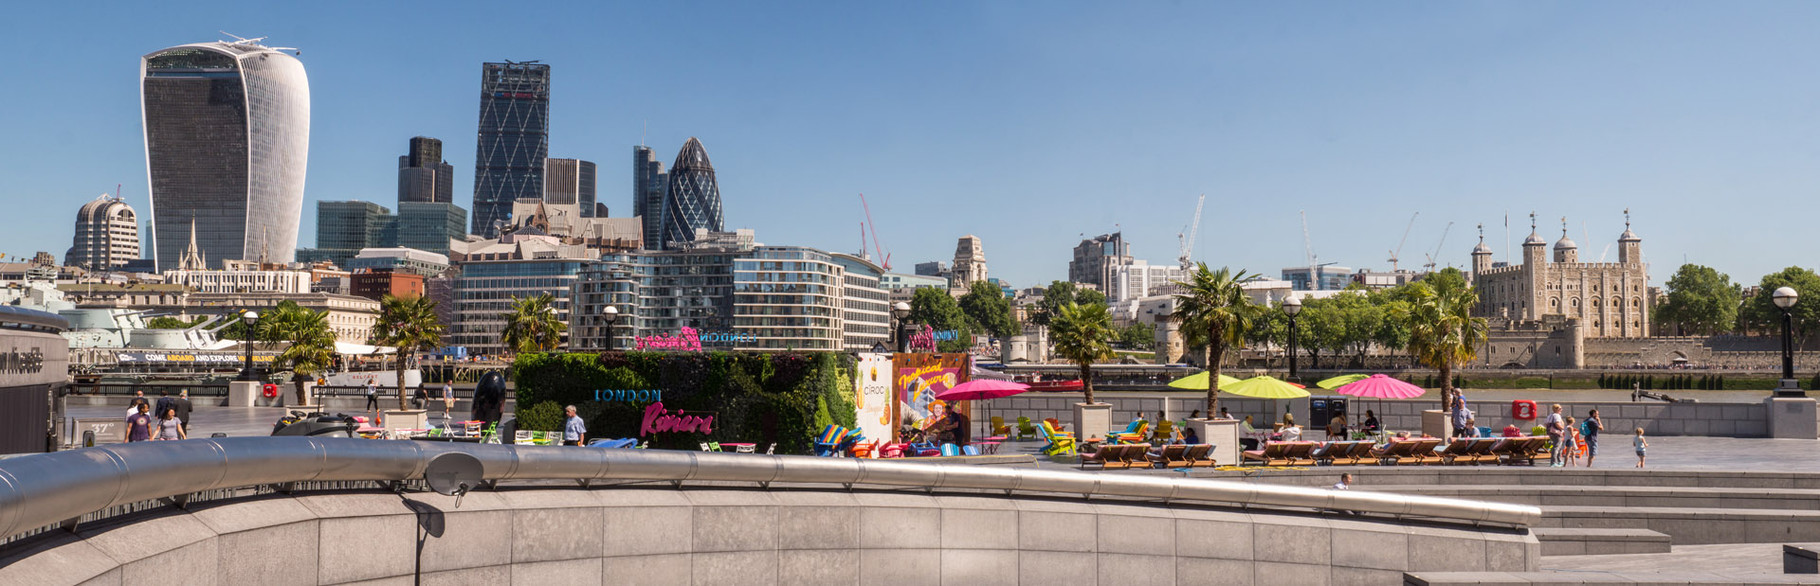 """Skyline with """"The Walkie Talkie"""" and """"The Gherkin"""", London"""